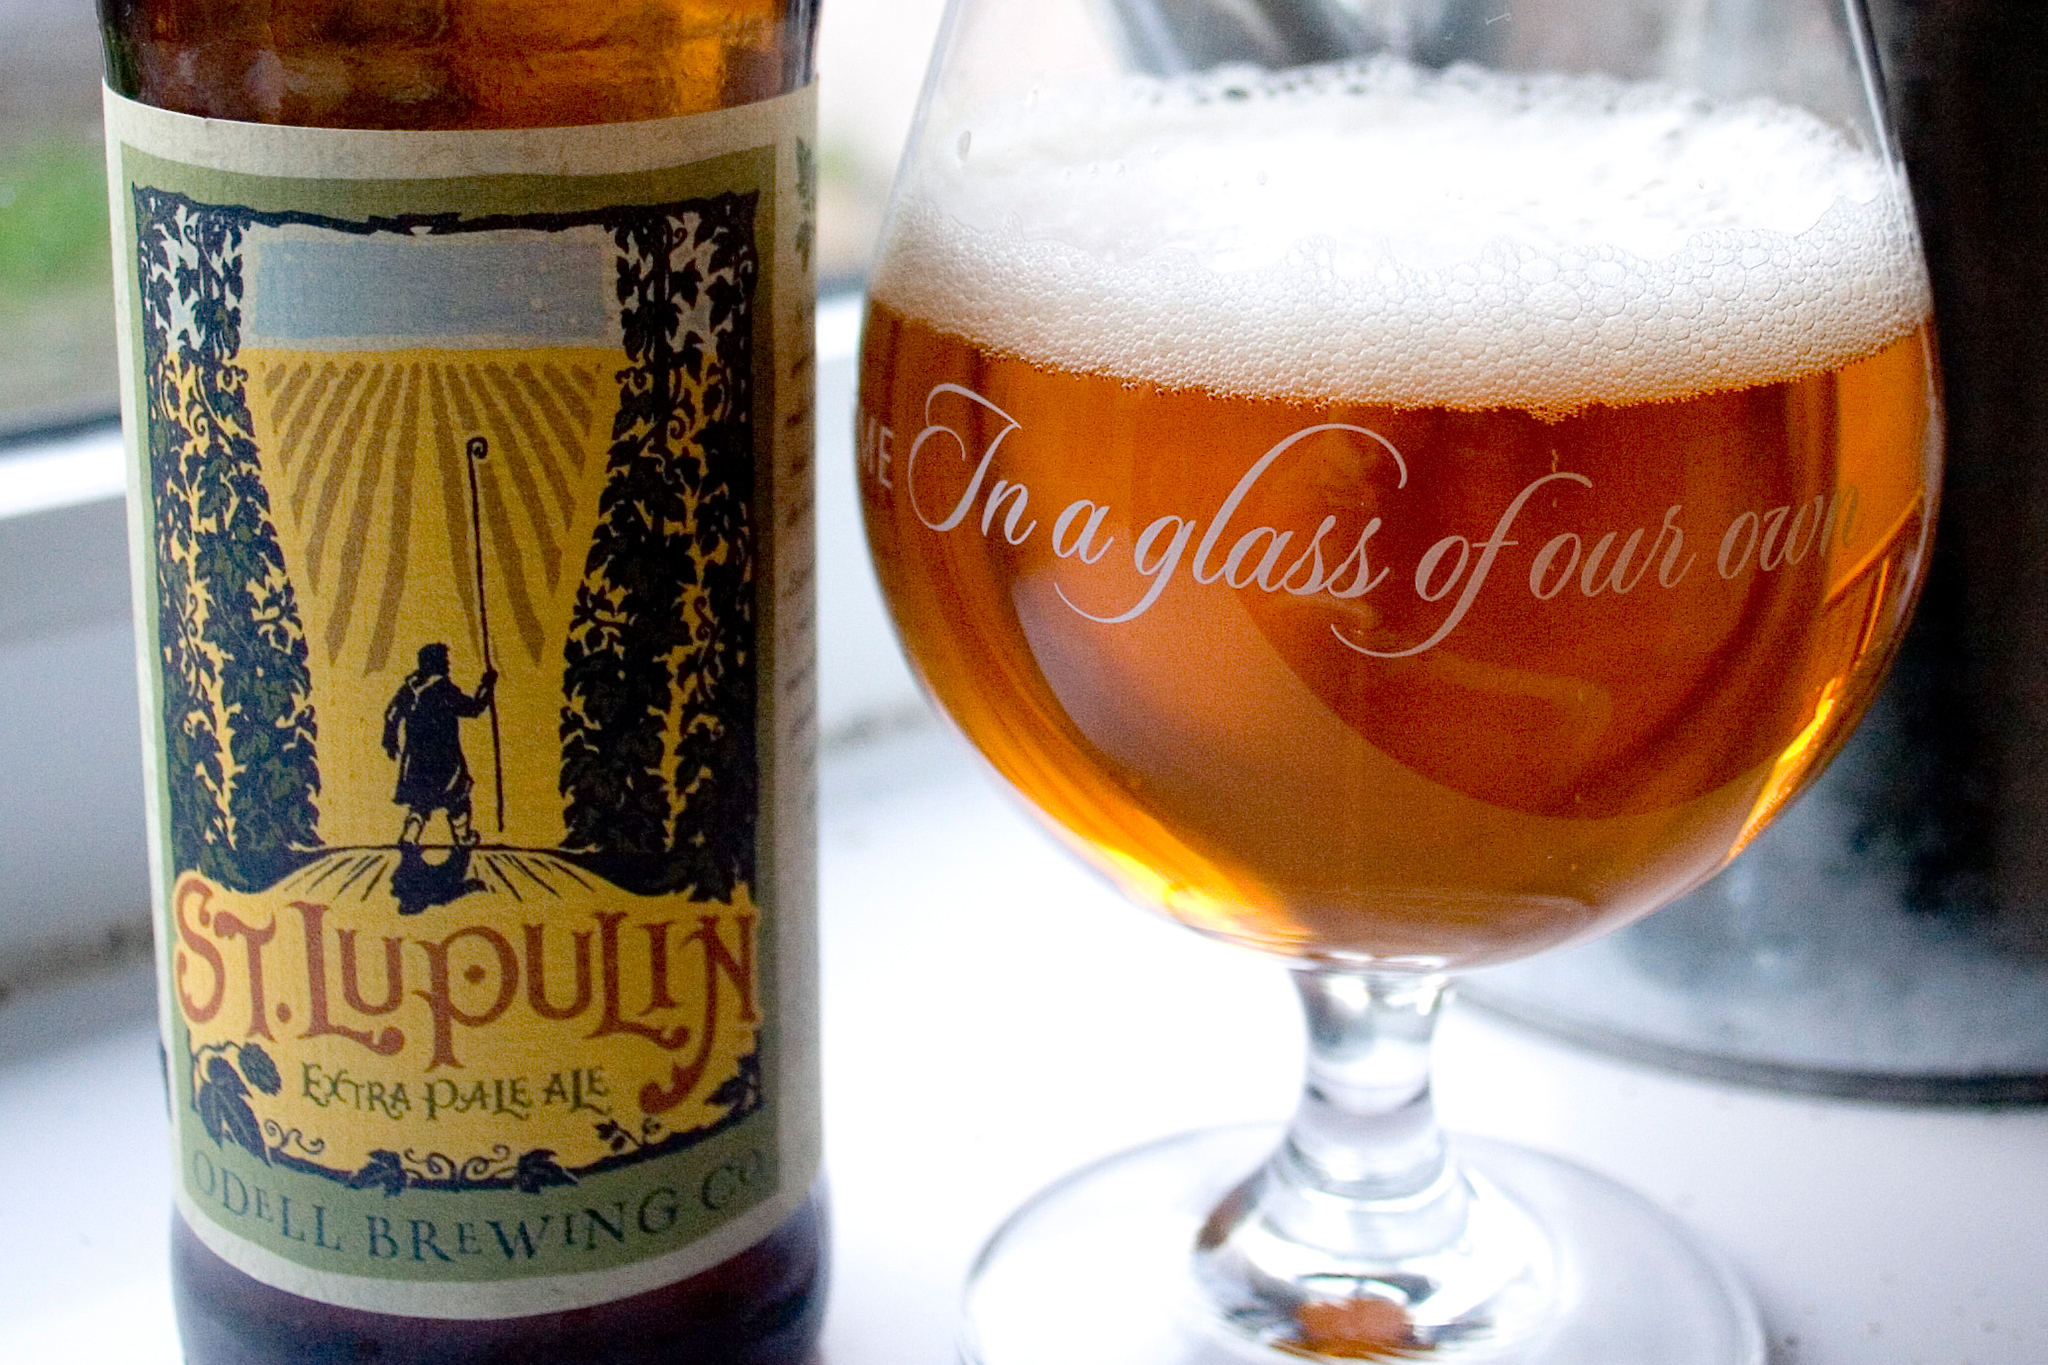 St. Lupulin, Odell Brewing Company, Fort Collins, CO